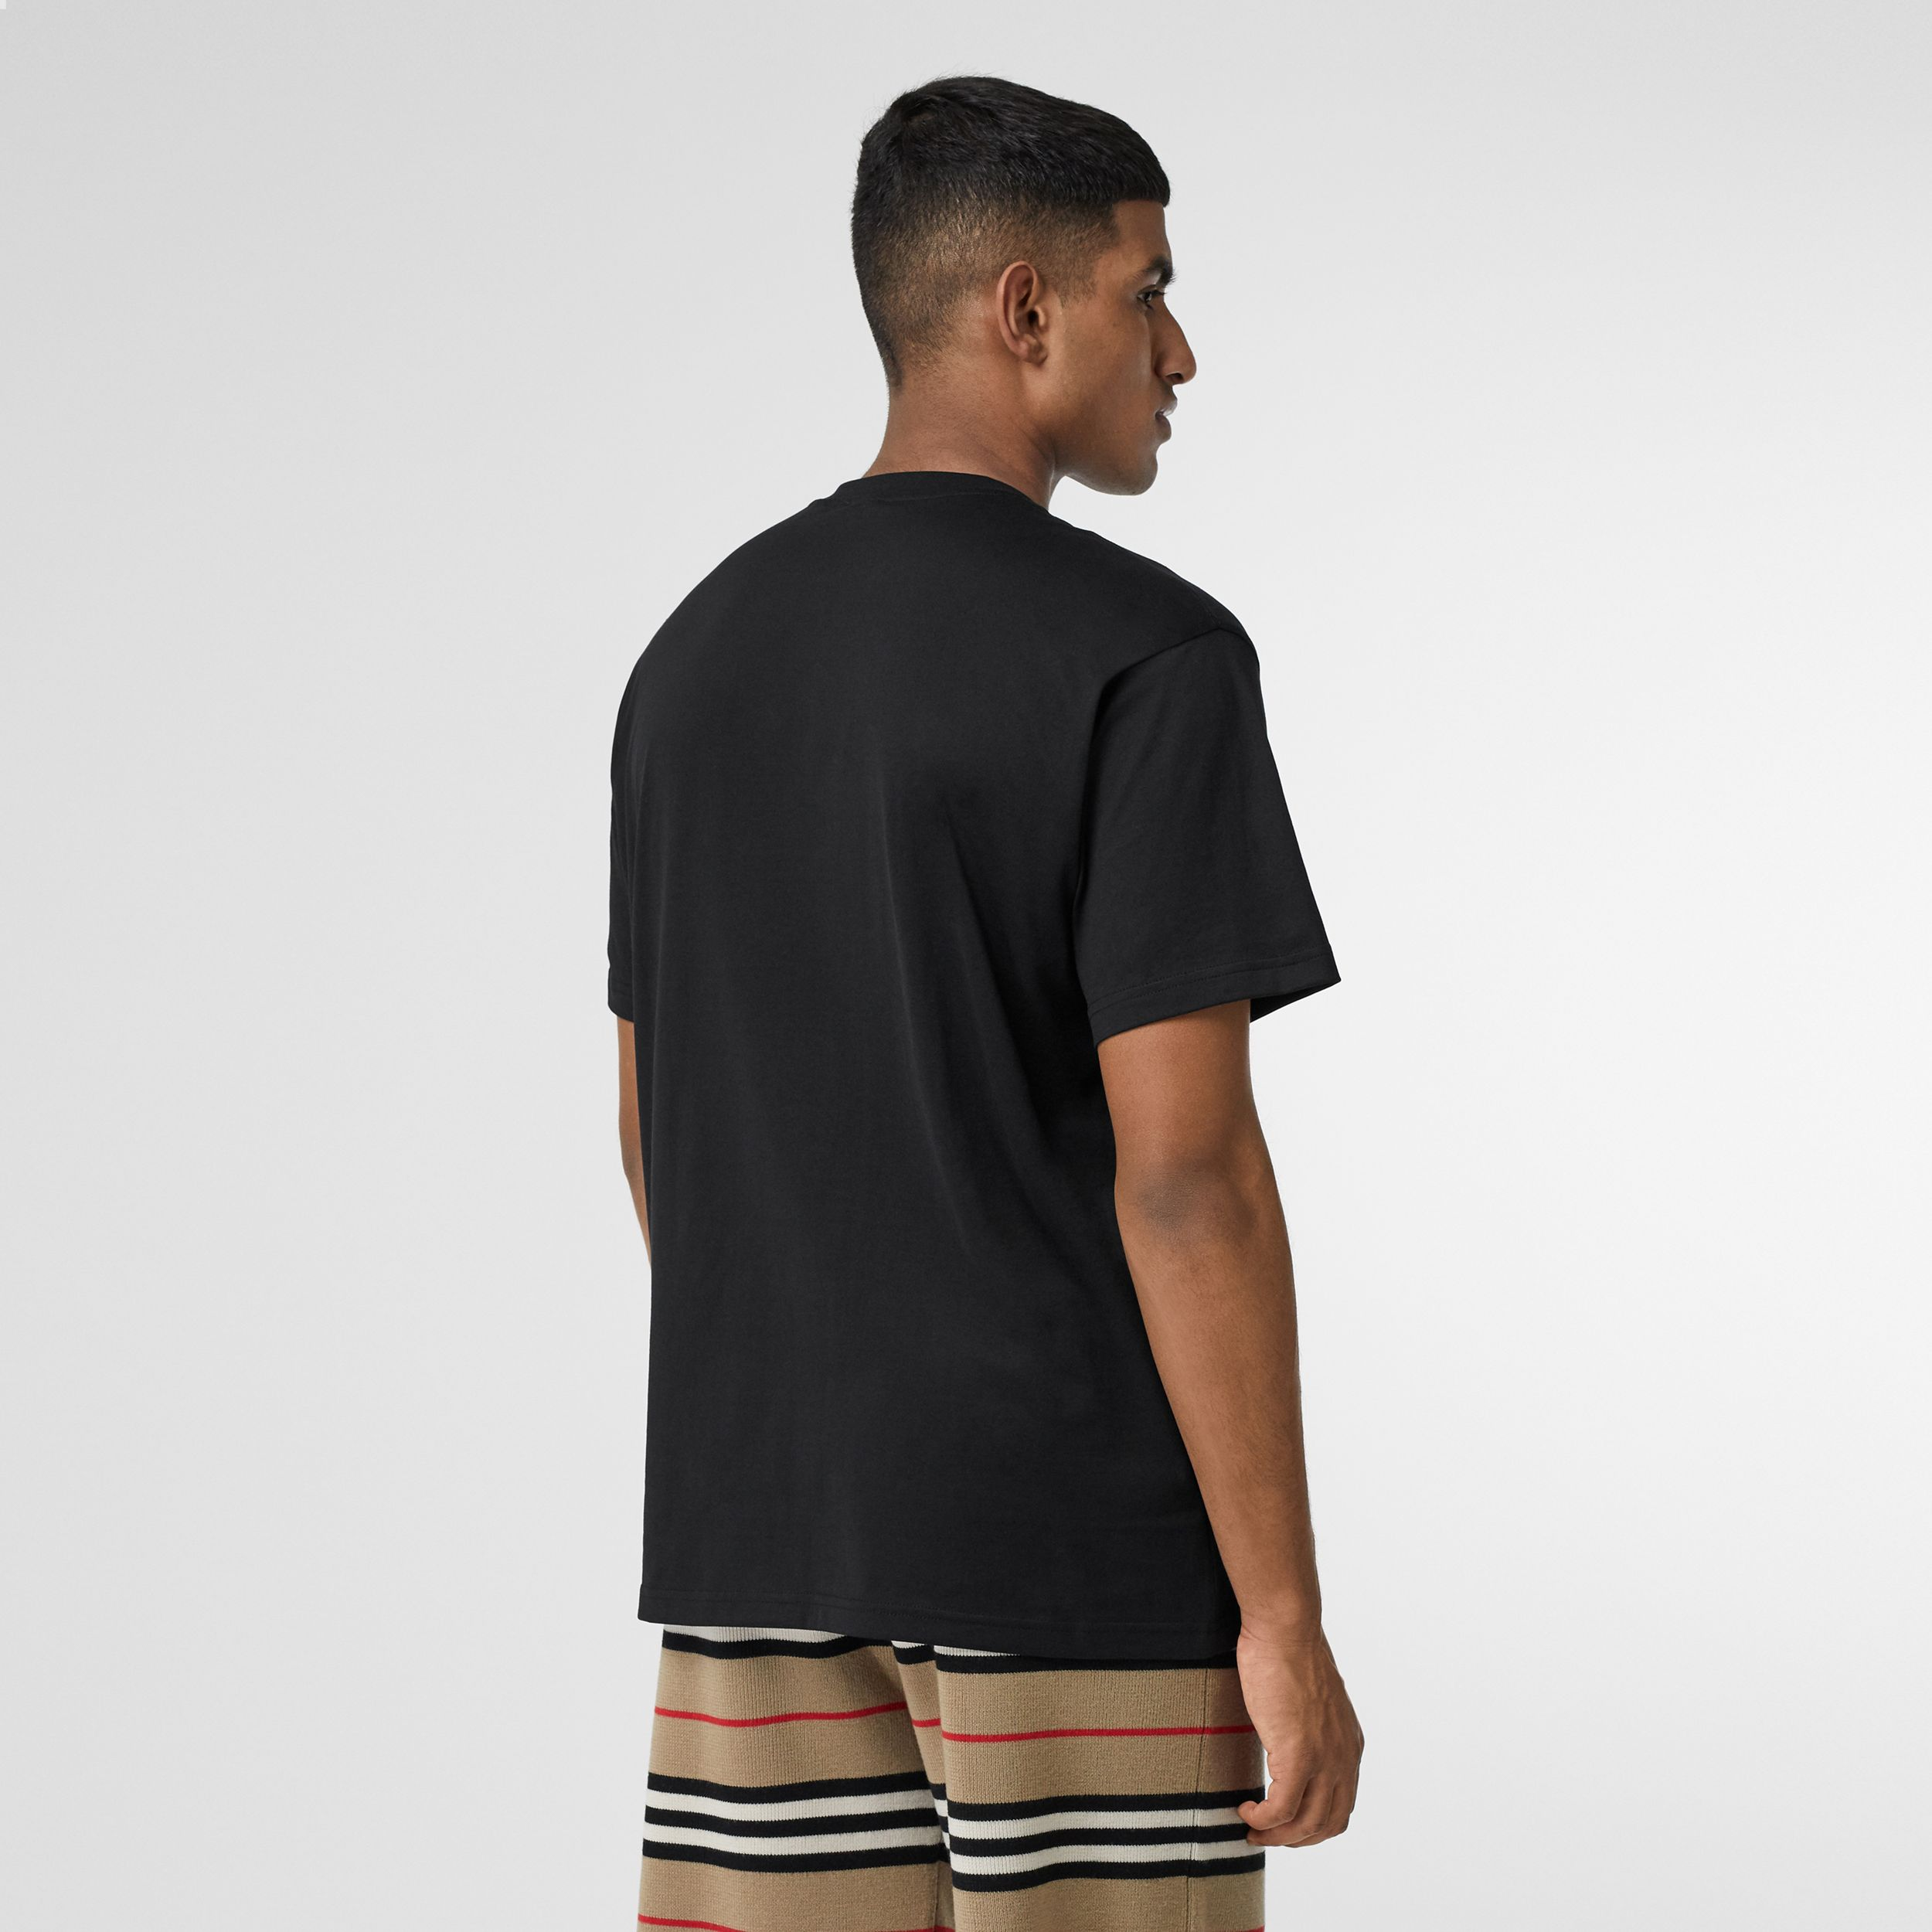 Monogram Motif Cotton Oversized T-shirt in Black - Men | Burberry - 3